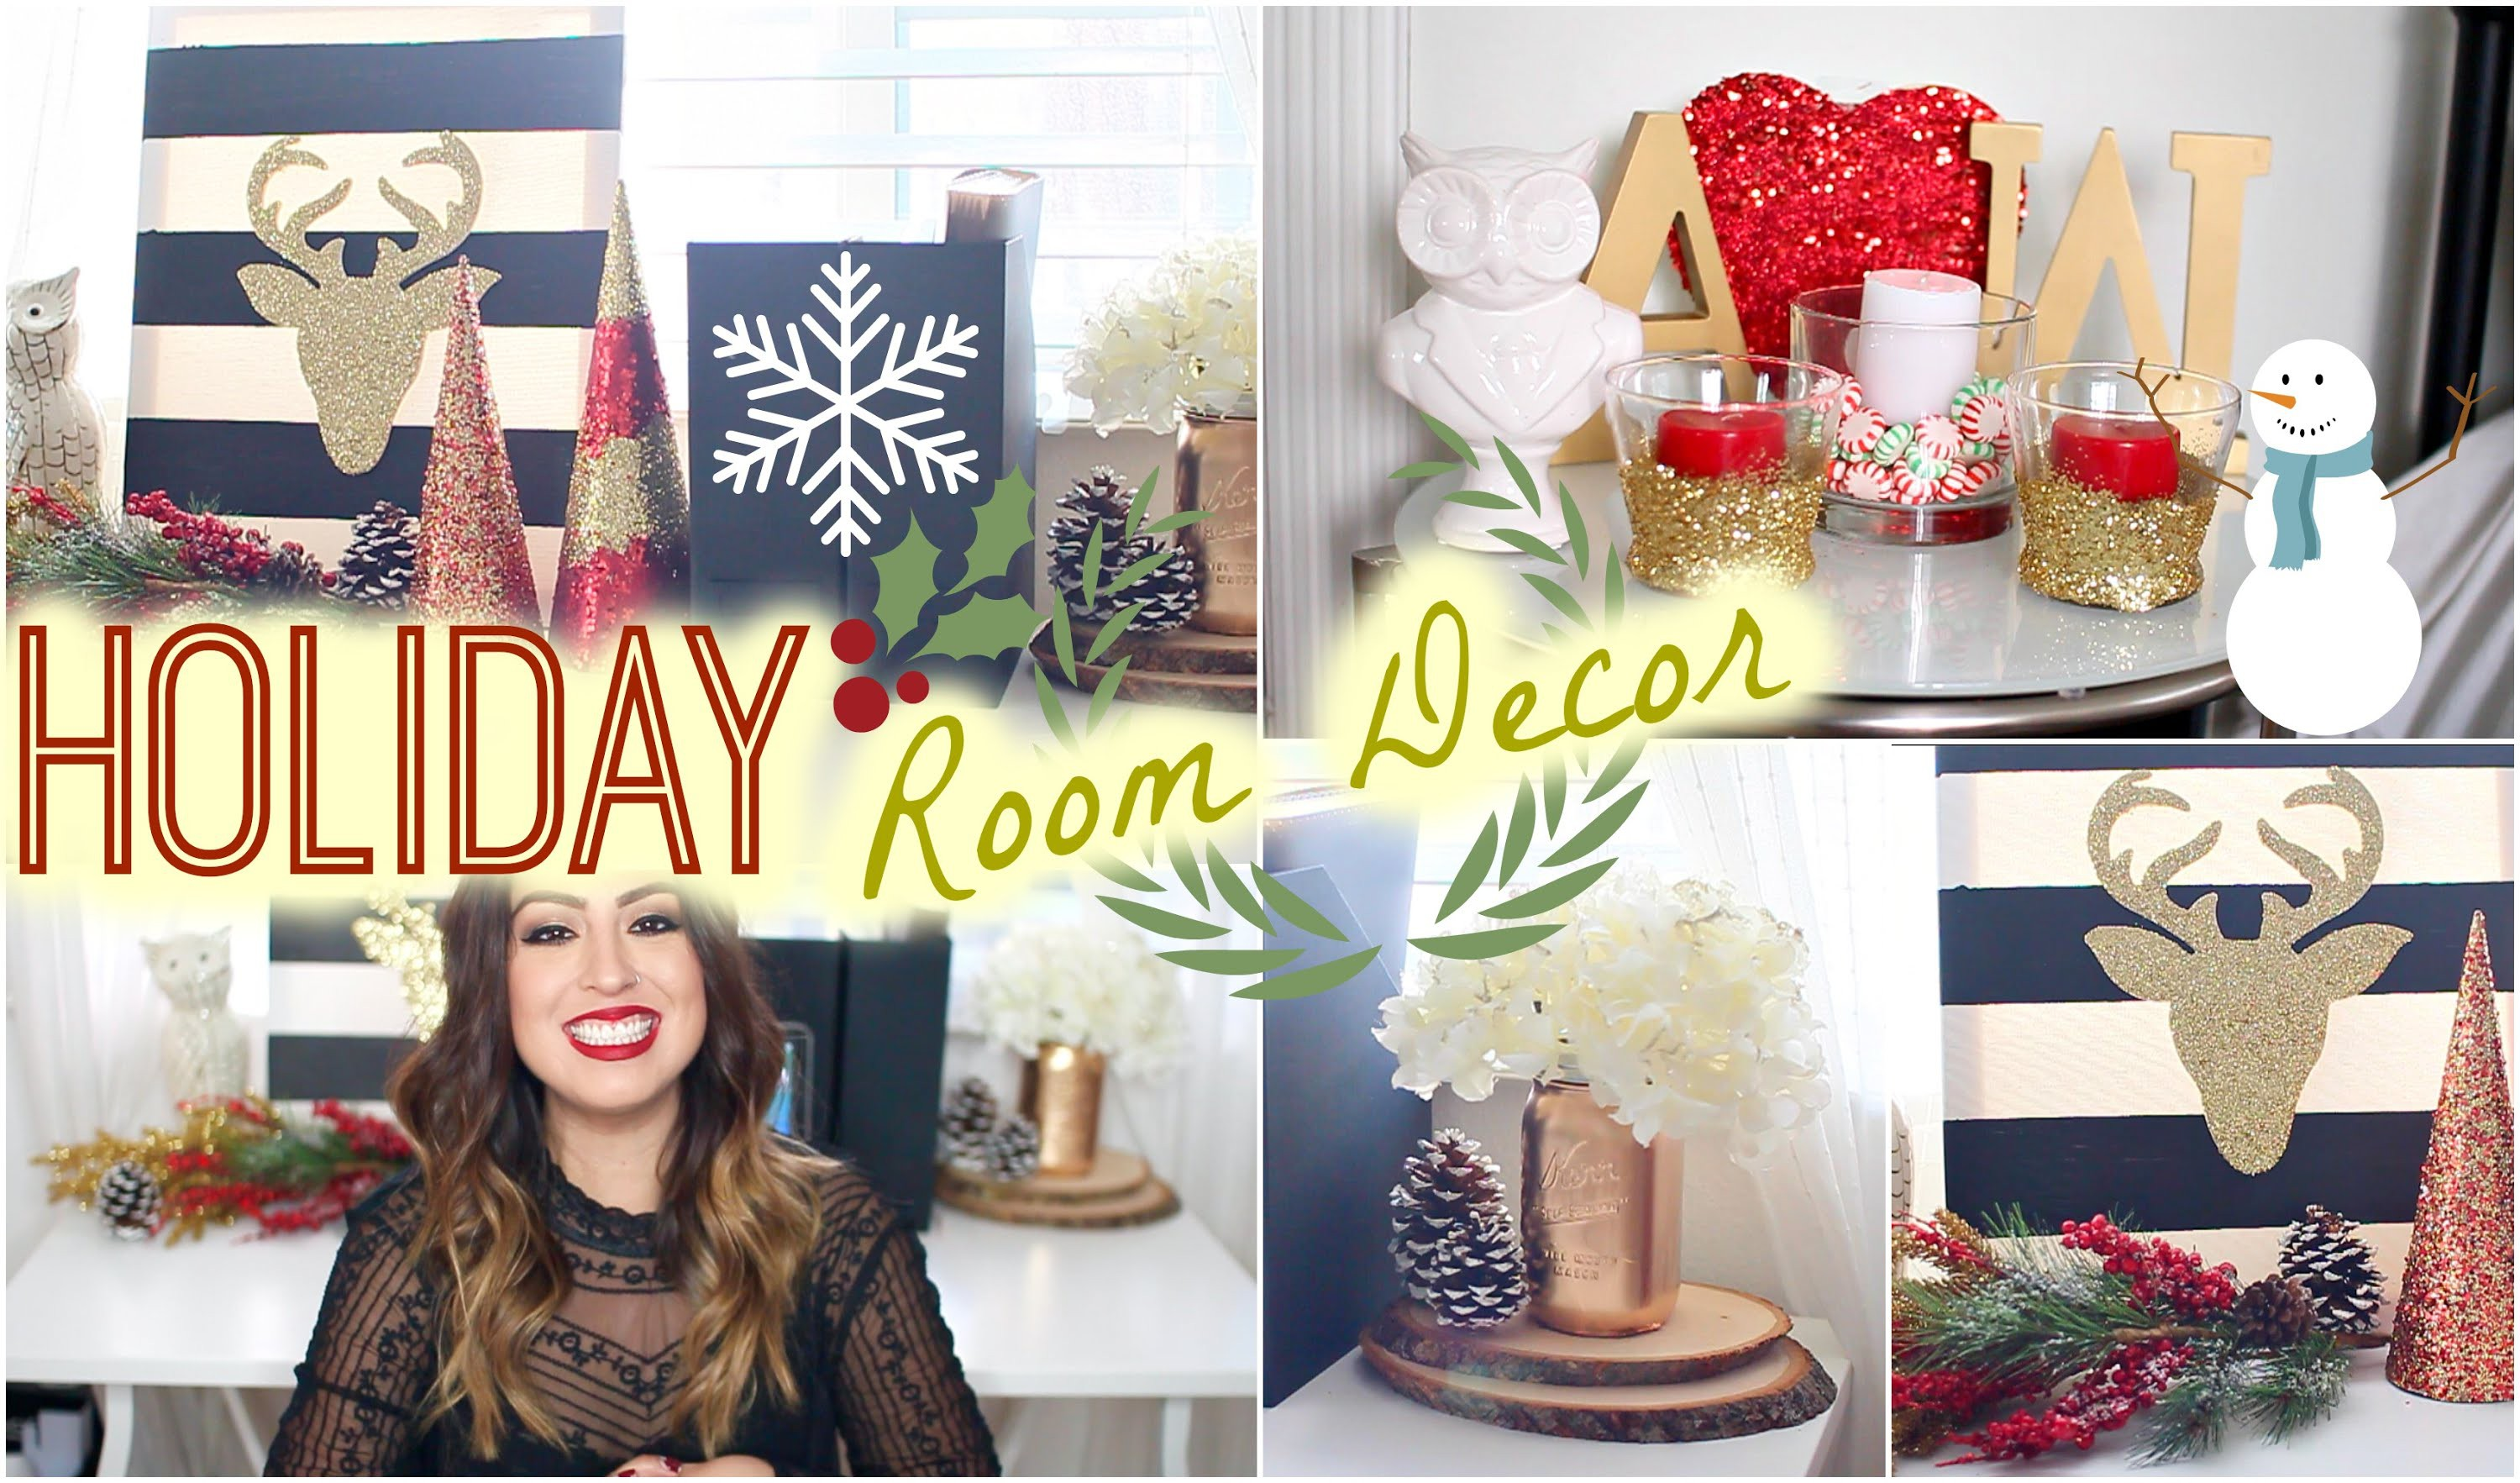 DIY Holiday Bedroom Decor: Easy & Festive